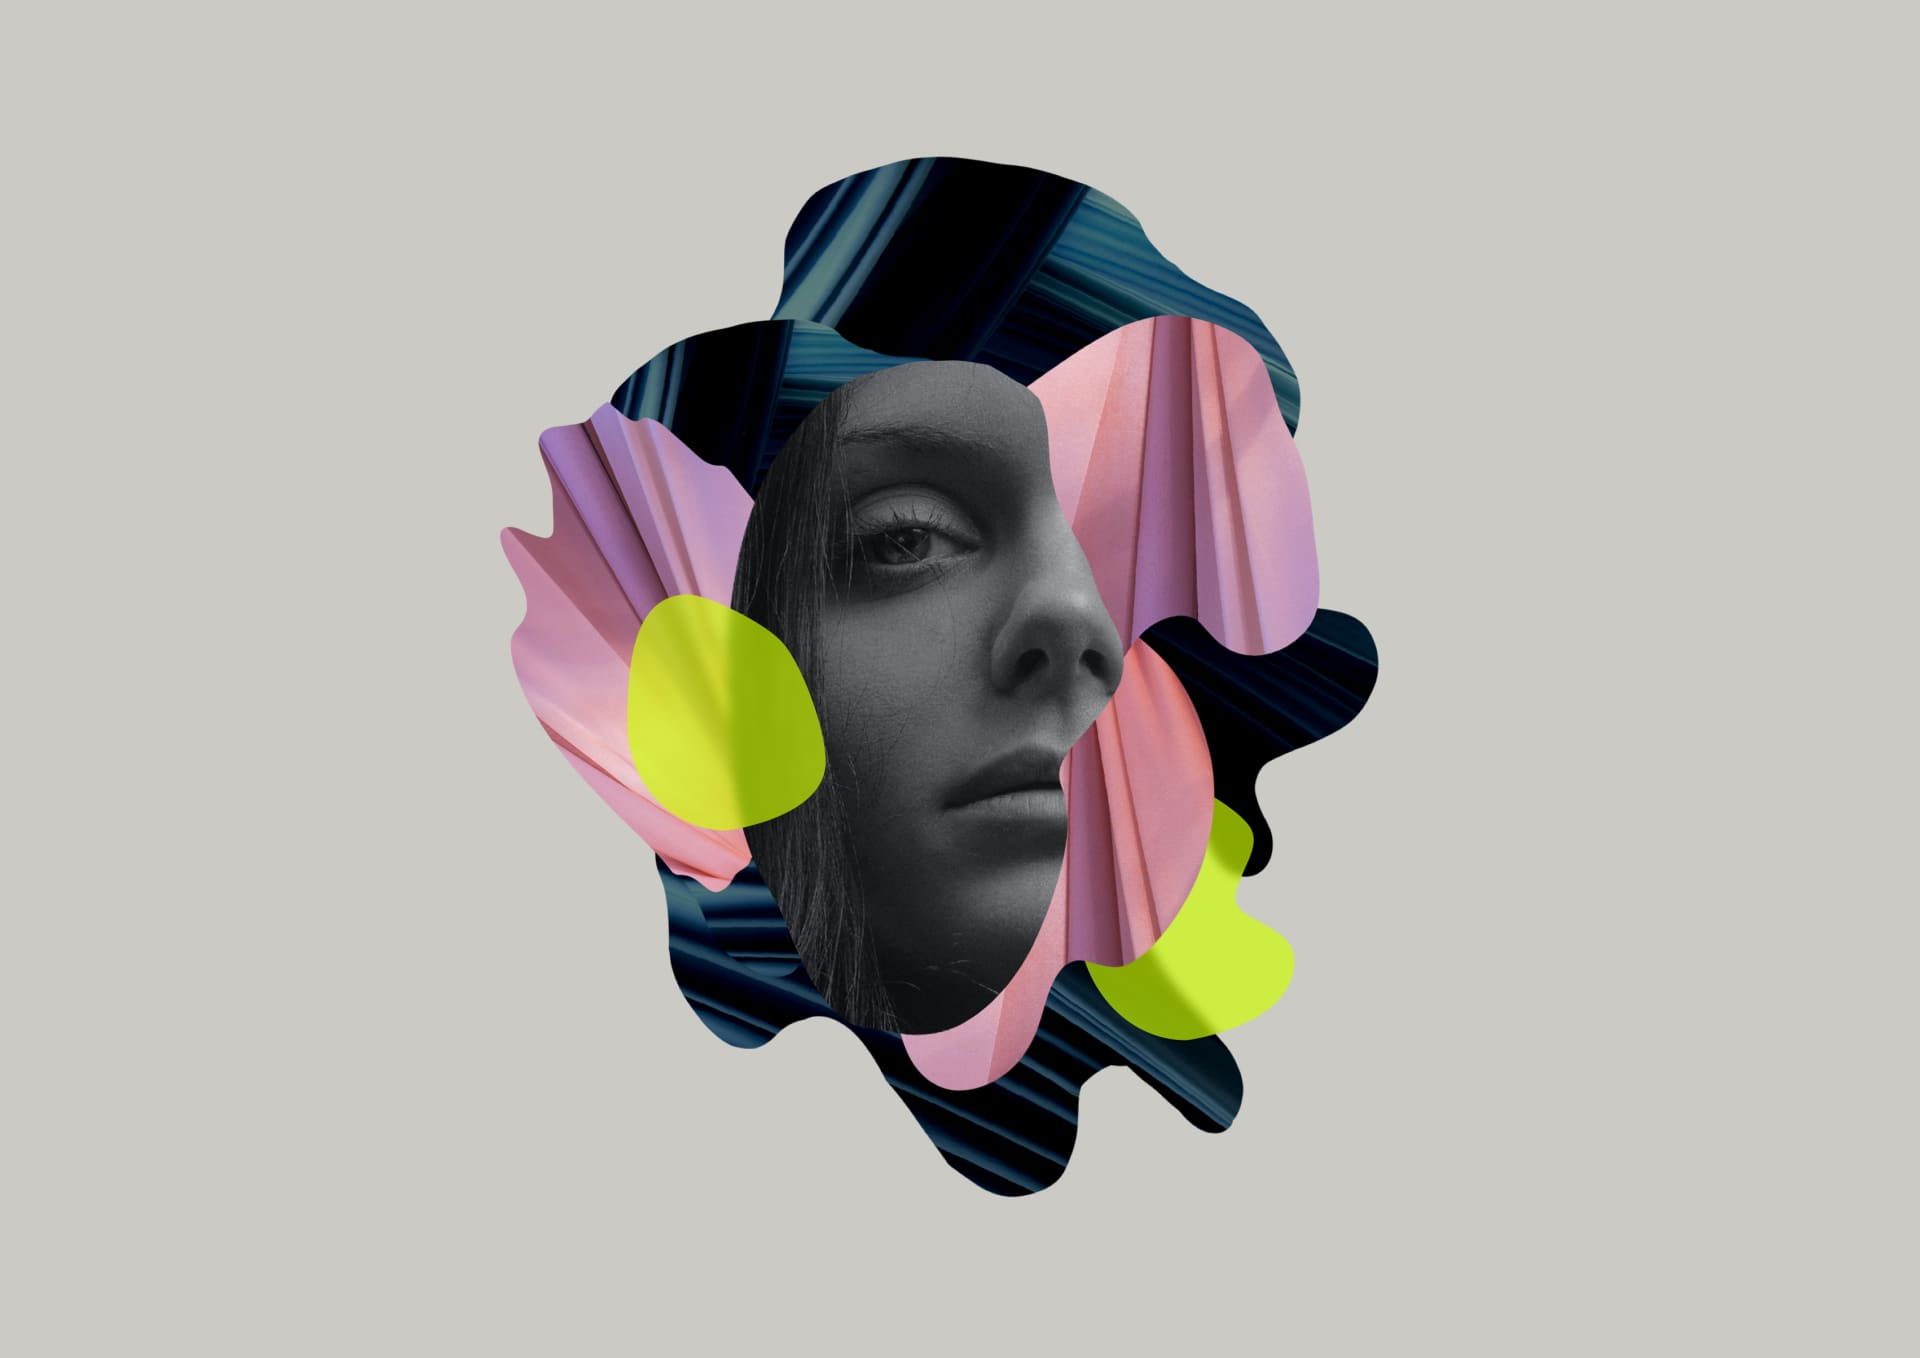 Image of a woman abstract